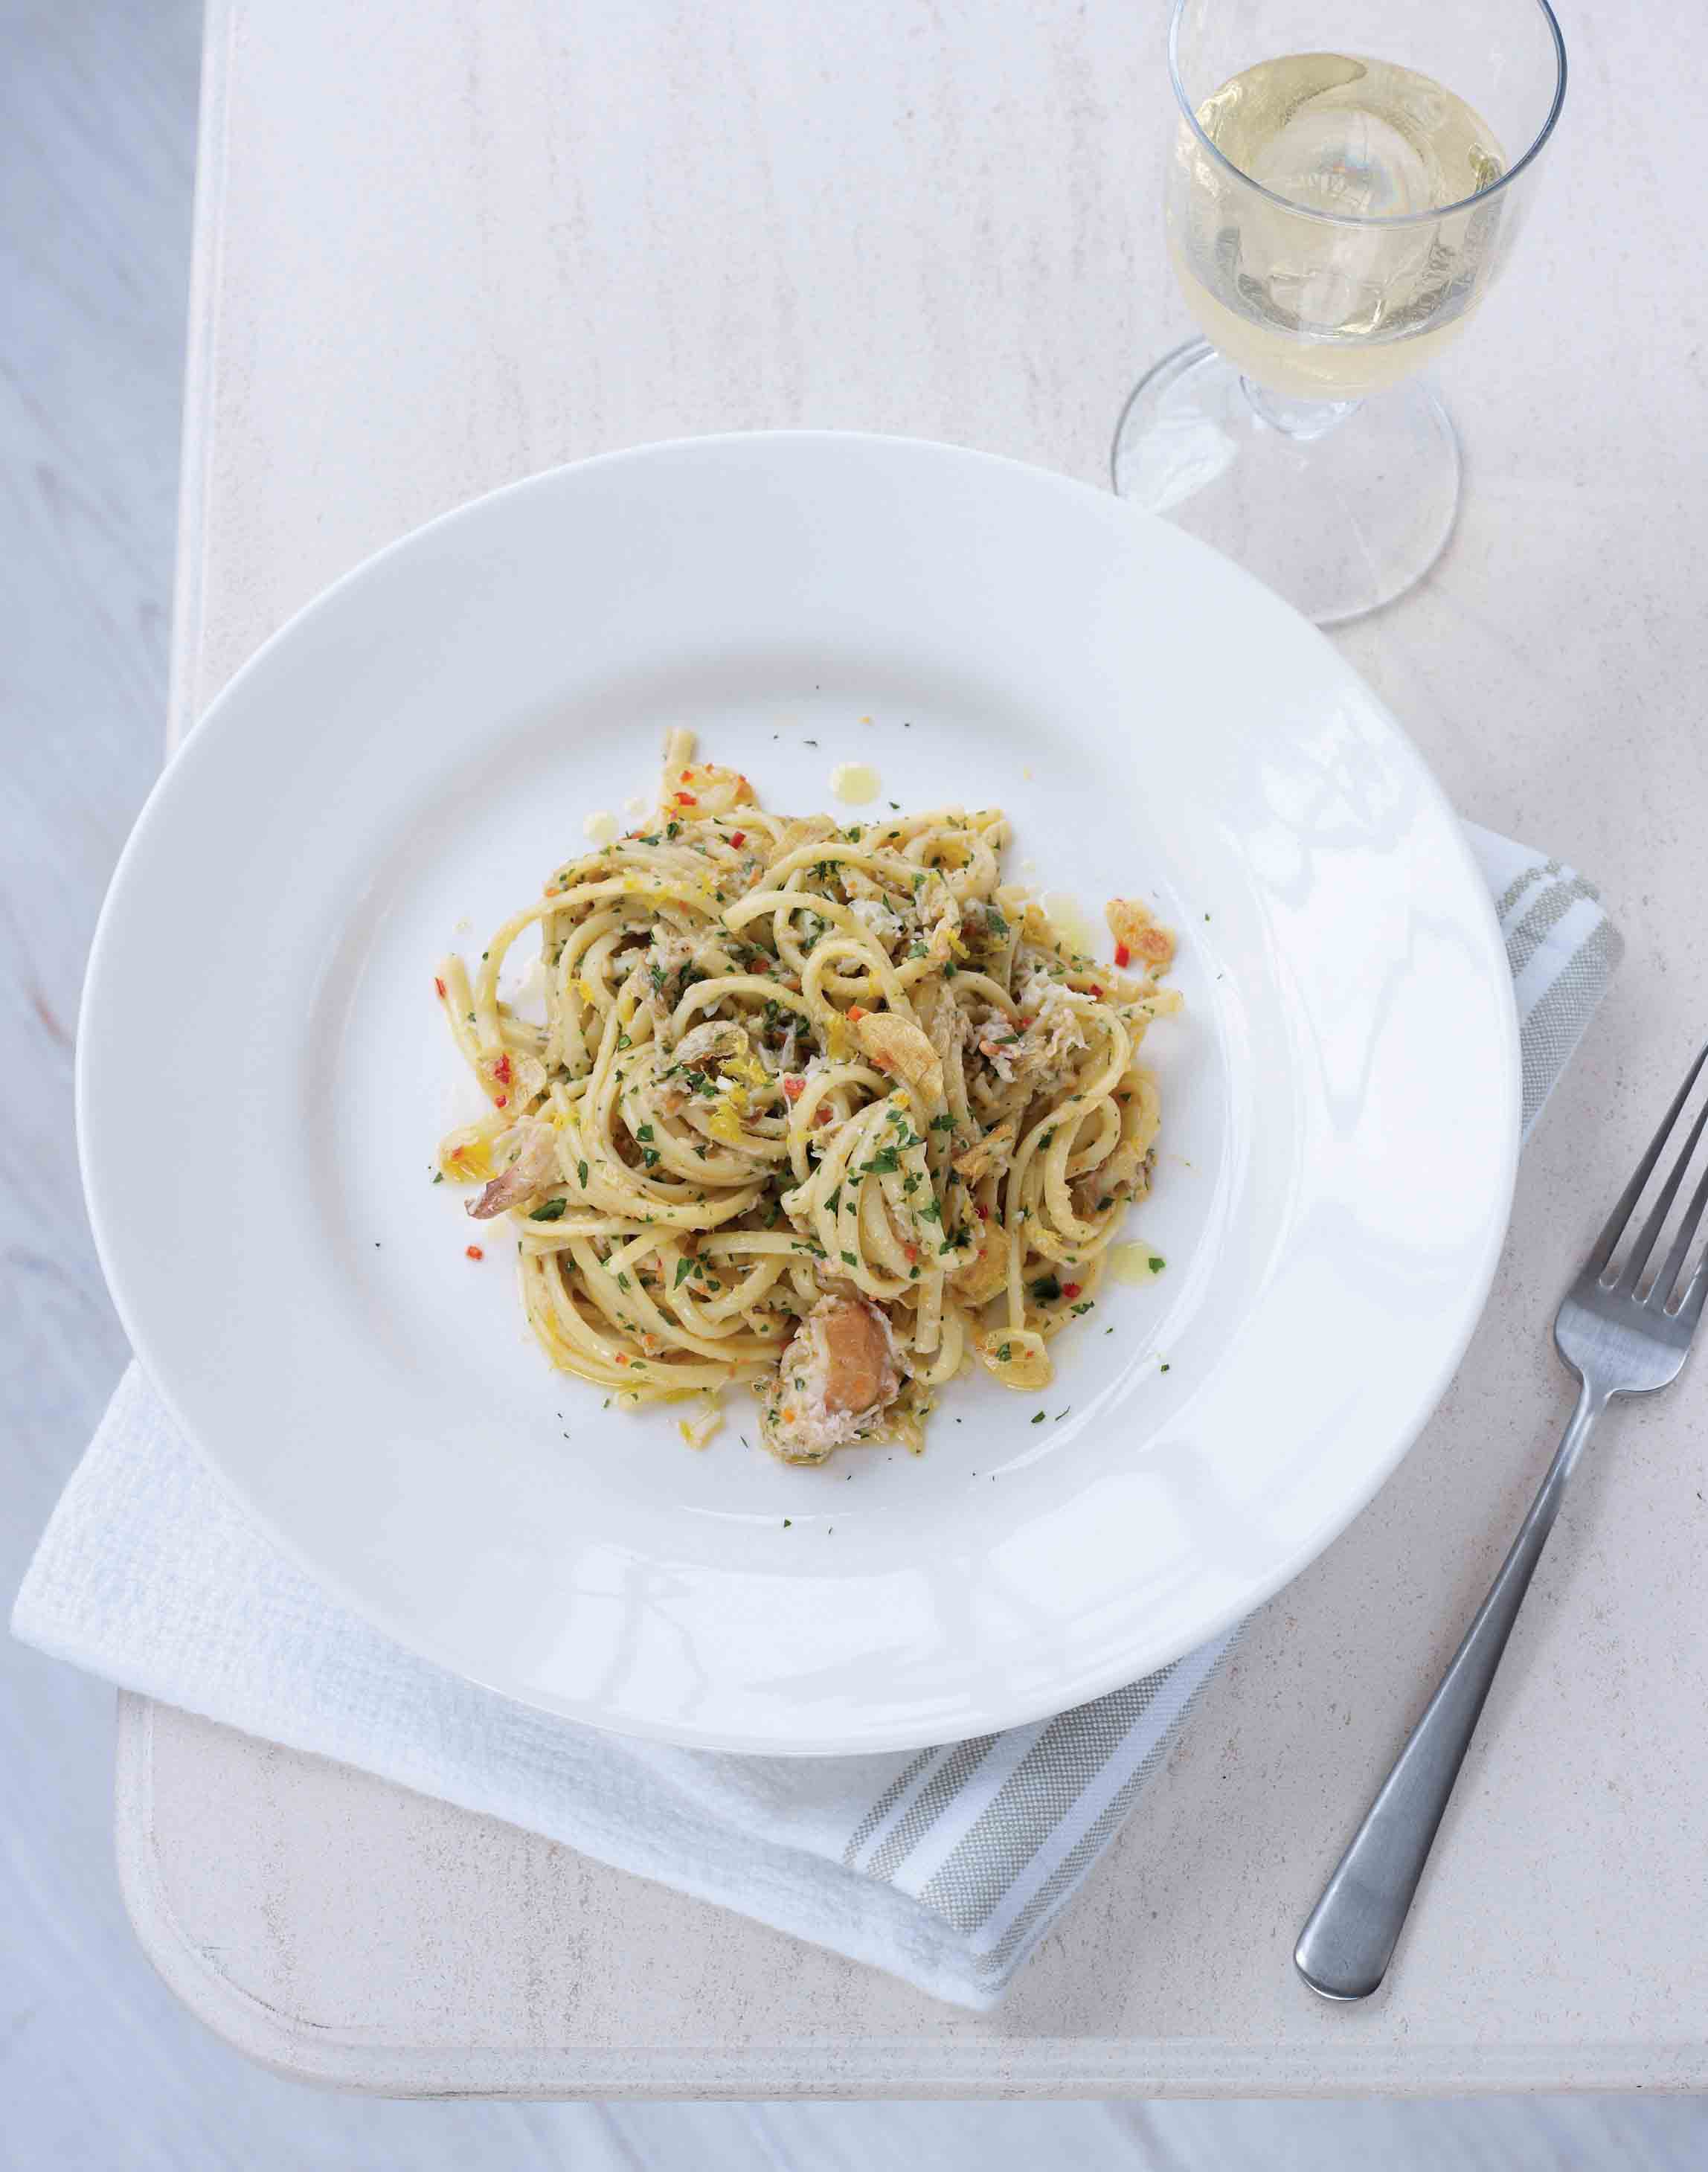 Crab linguine with chilli and lemon